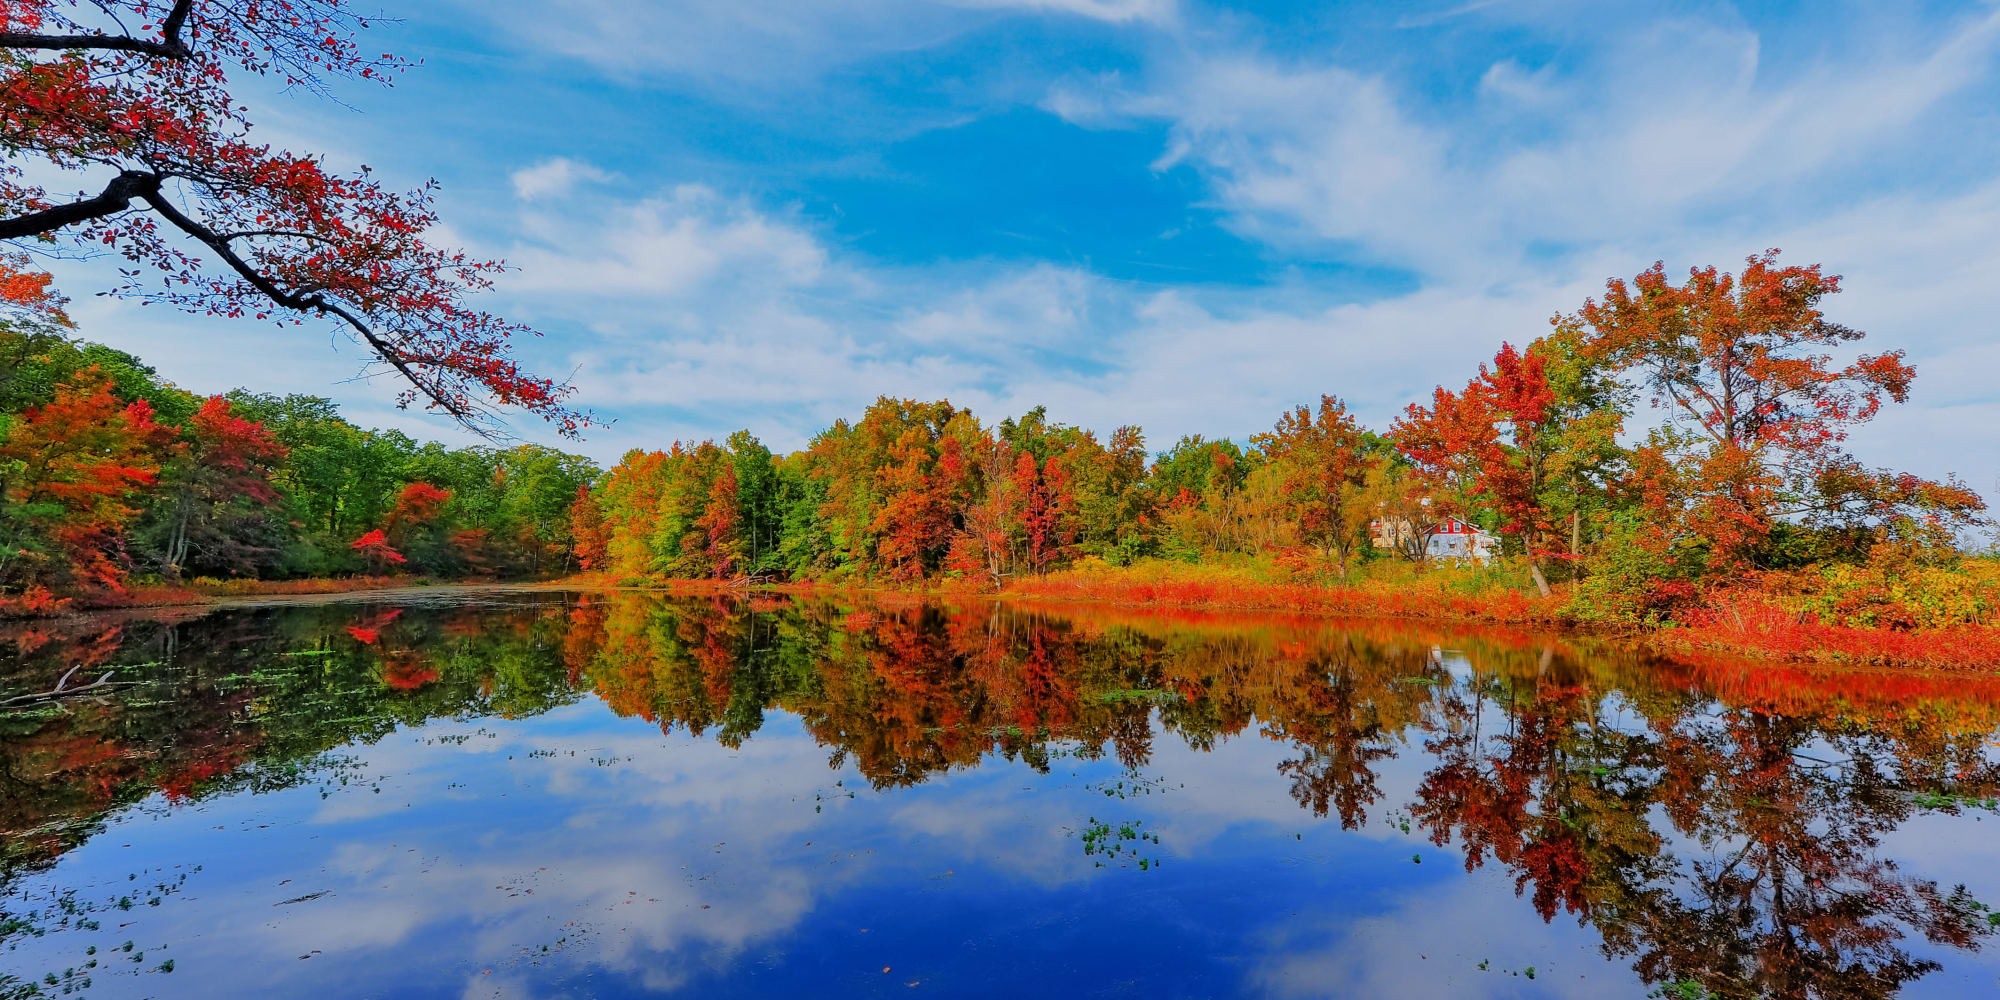 Bright colored trees reflecting in the water